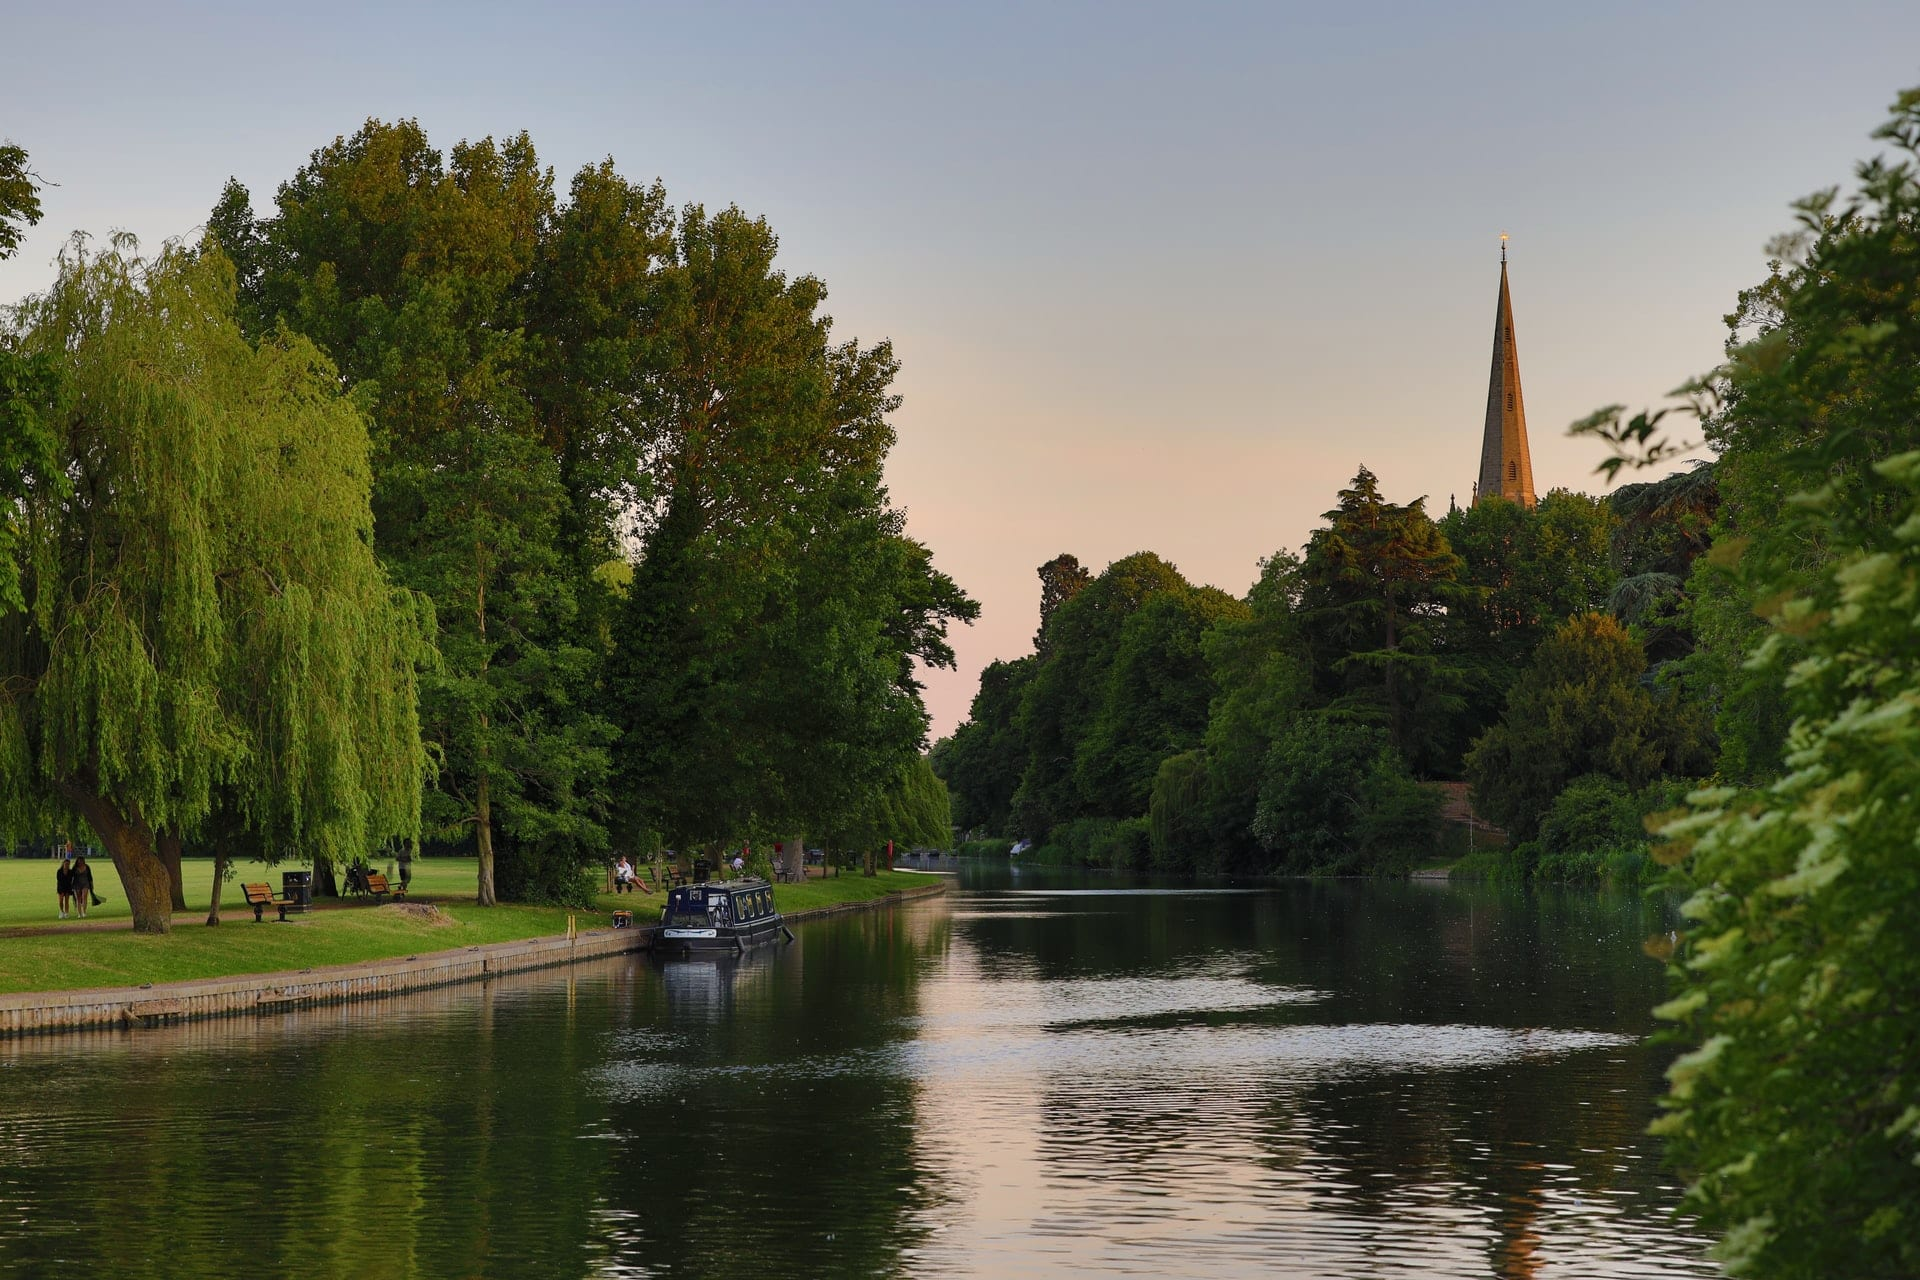 sunset-on-river-going-through-town-by-trees-and-church-stratford-upon-avon-england